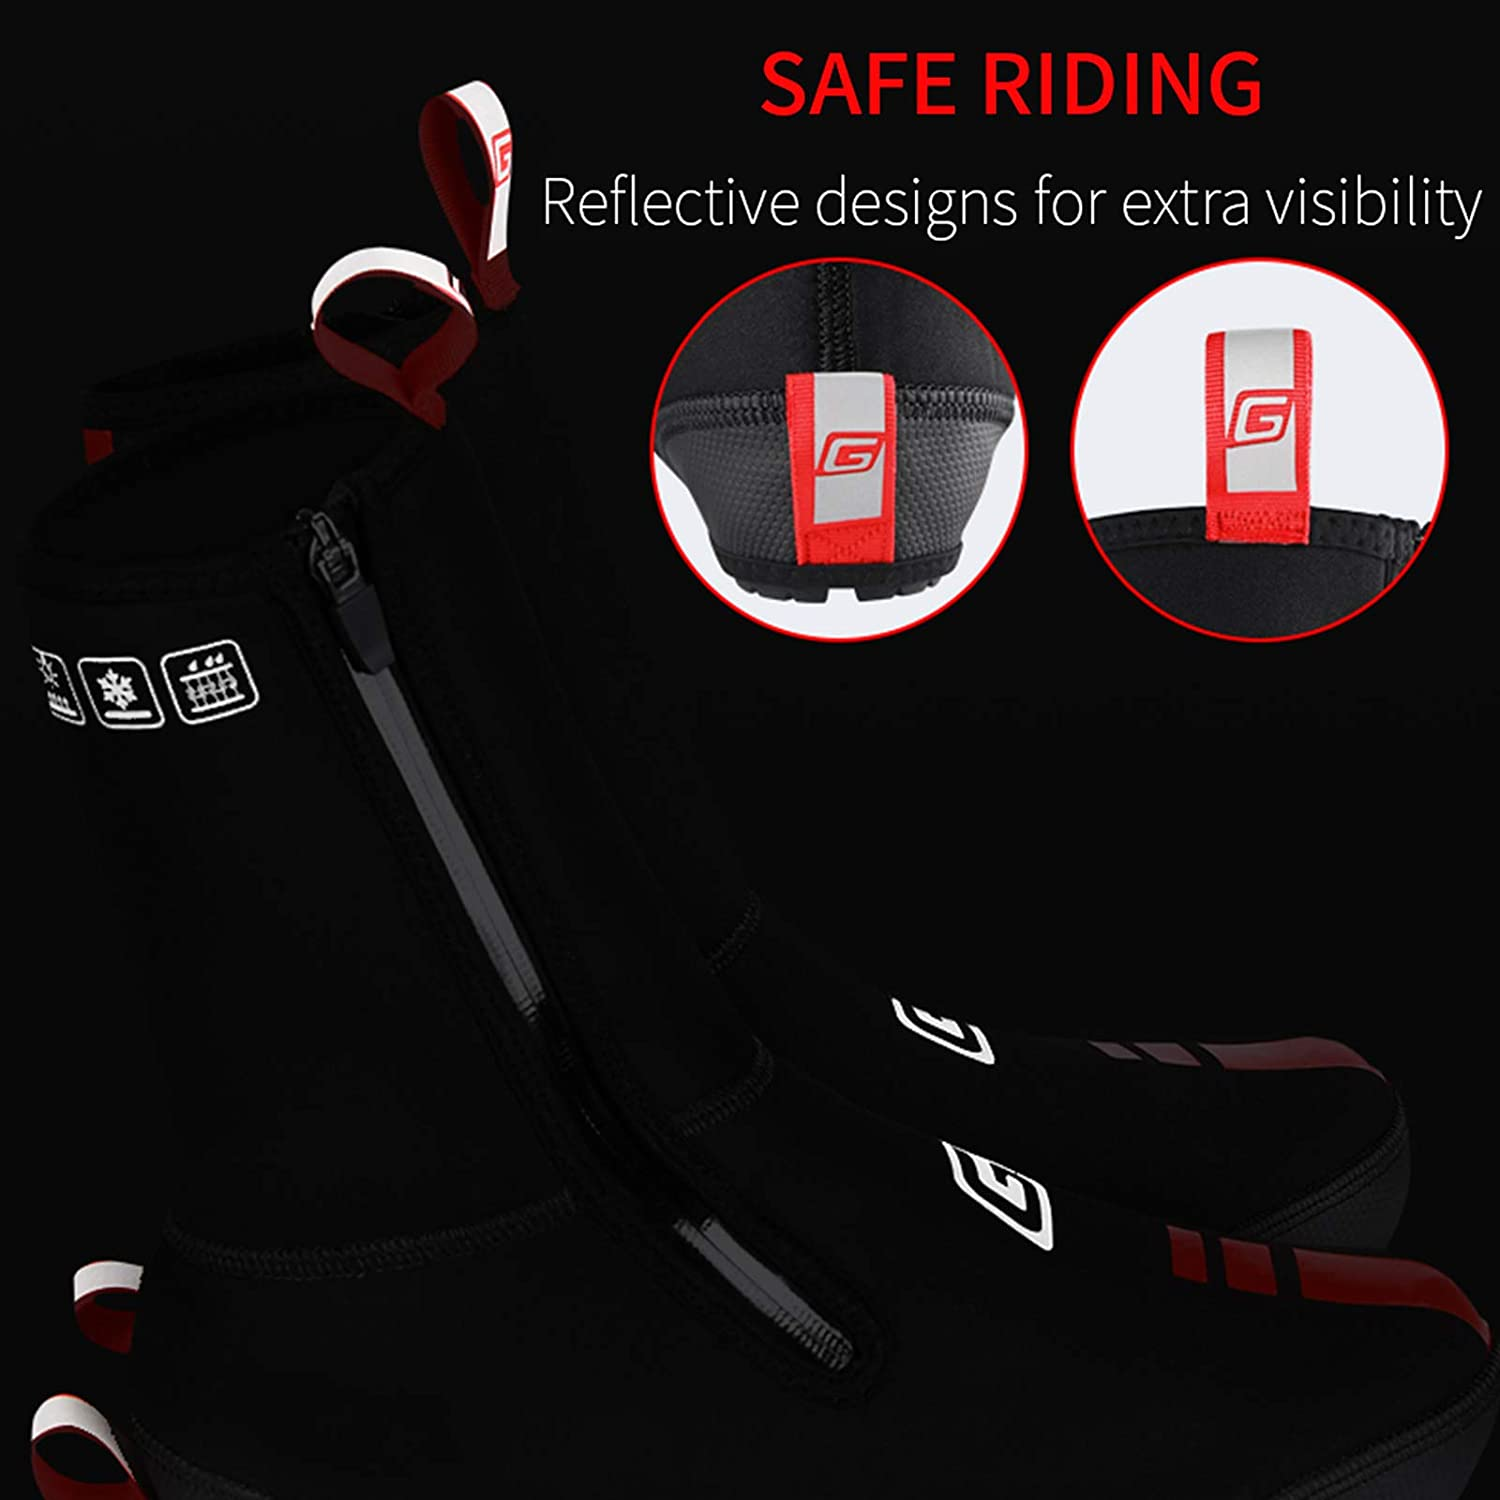 Rainproof Non-Slip Bicycle Shoes Cover for Road//MTB Winter Waterproof Reflective Windproof Bike Overshoes Warm Cycling Shoe Covers Cold Weather